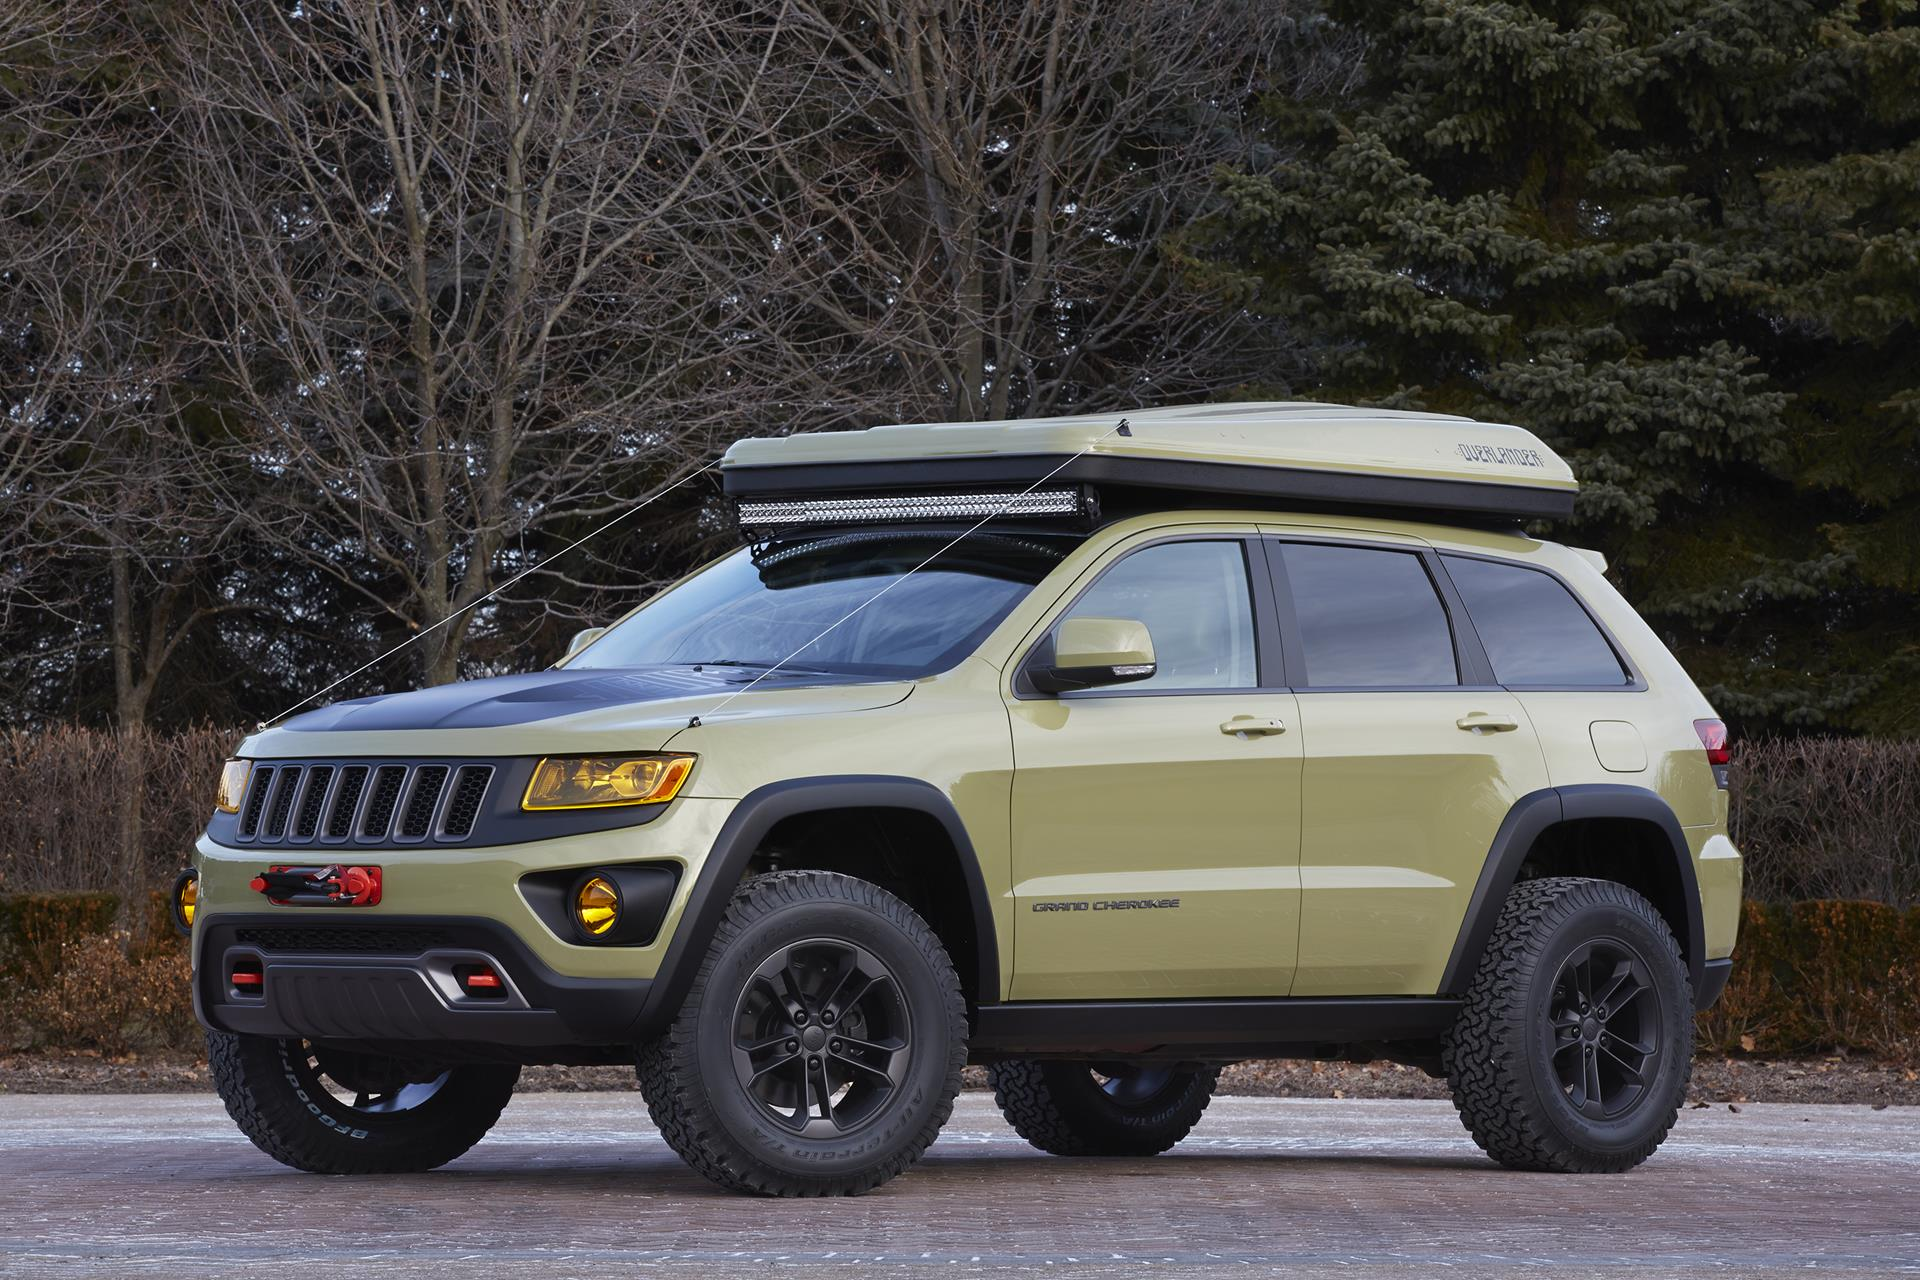 2015 jeep grand cherokee overlander. Black Bedroom Furniture Sets. Home Design Ideas